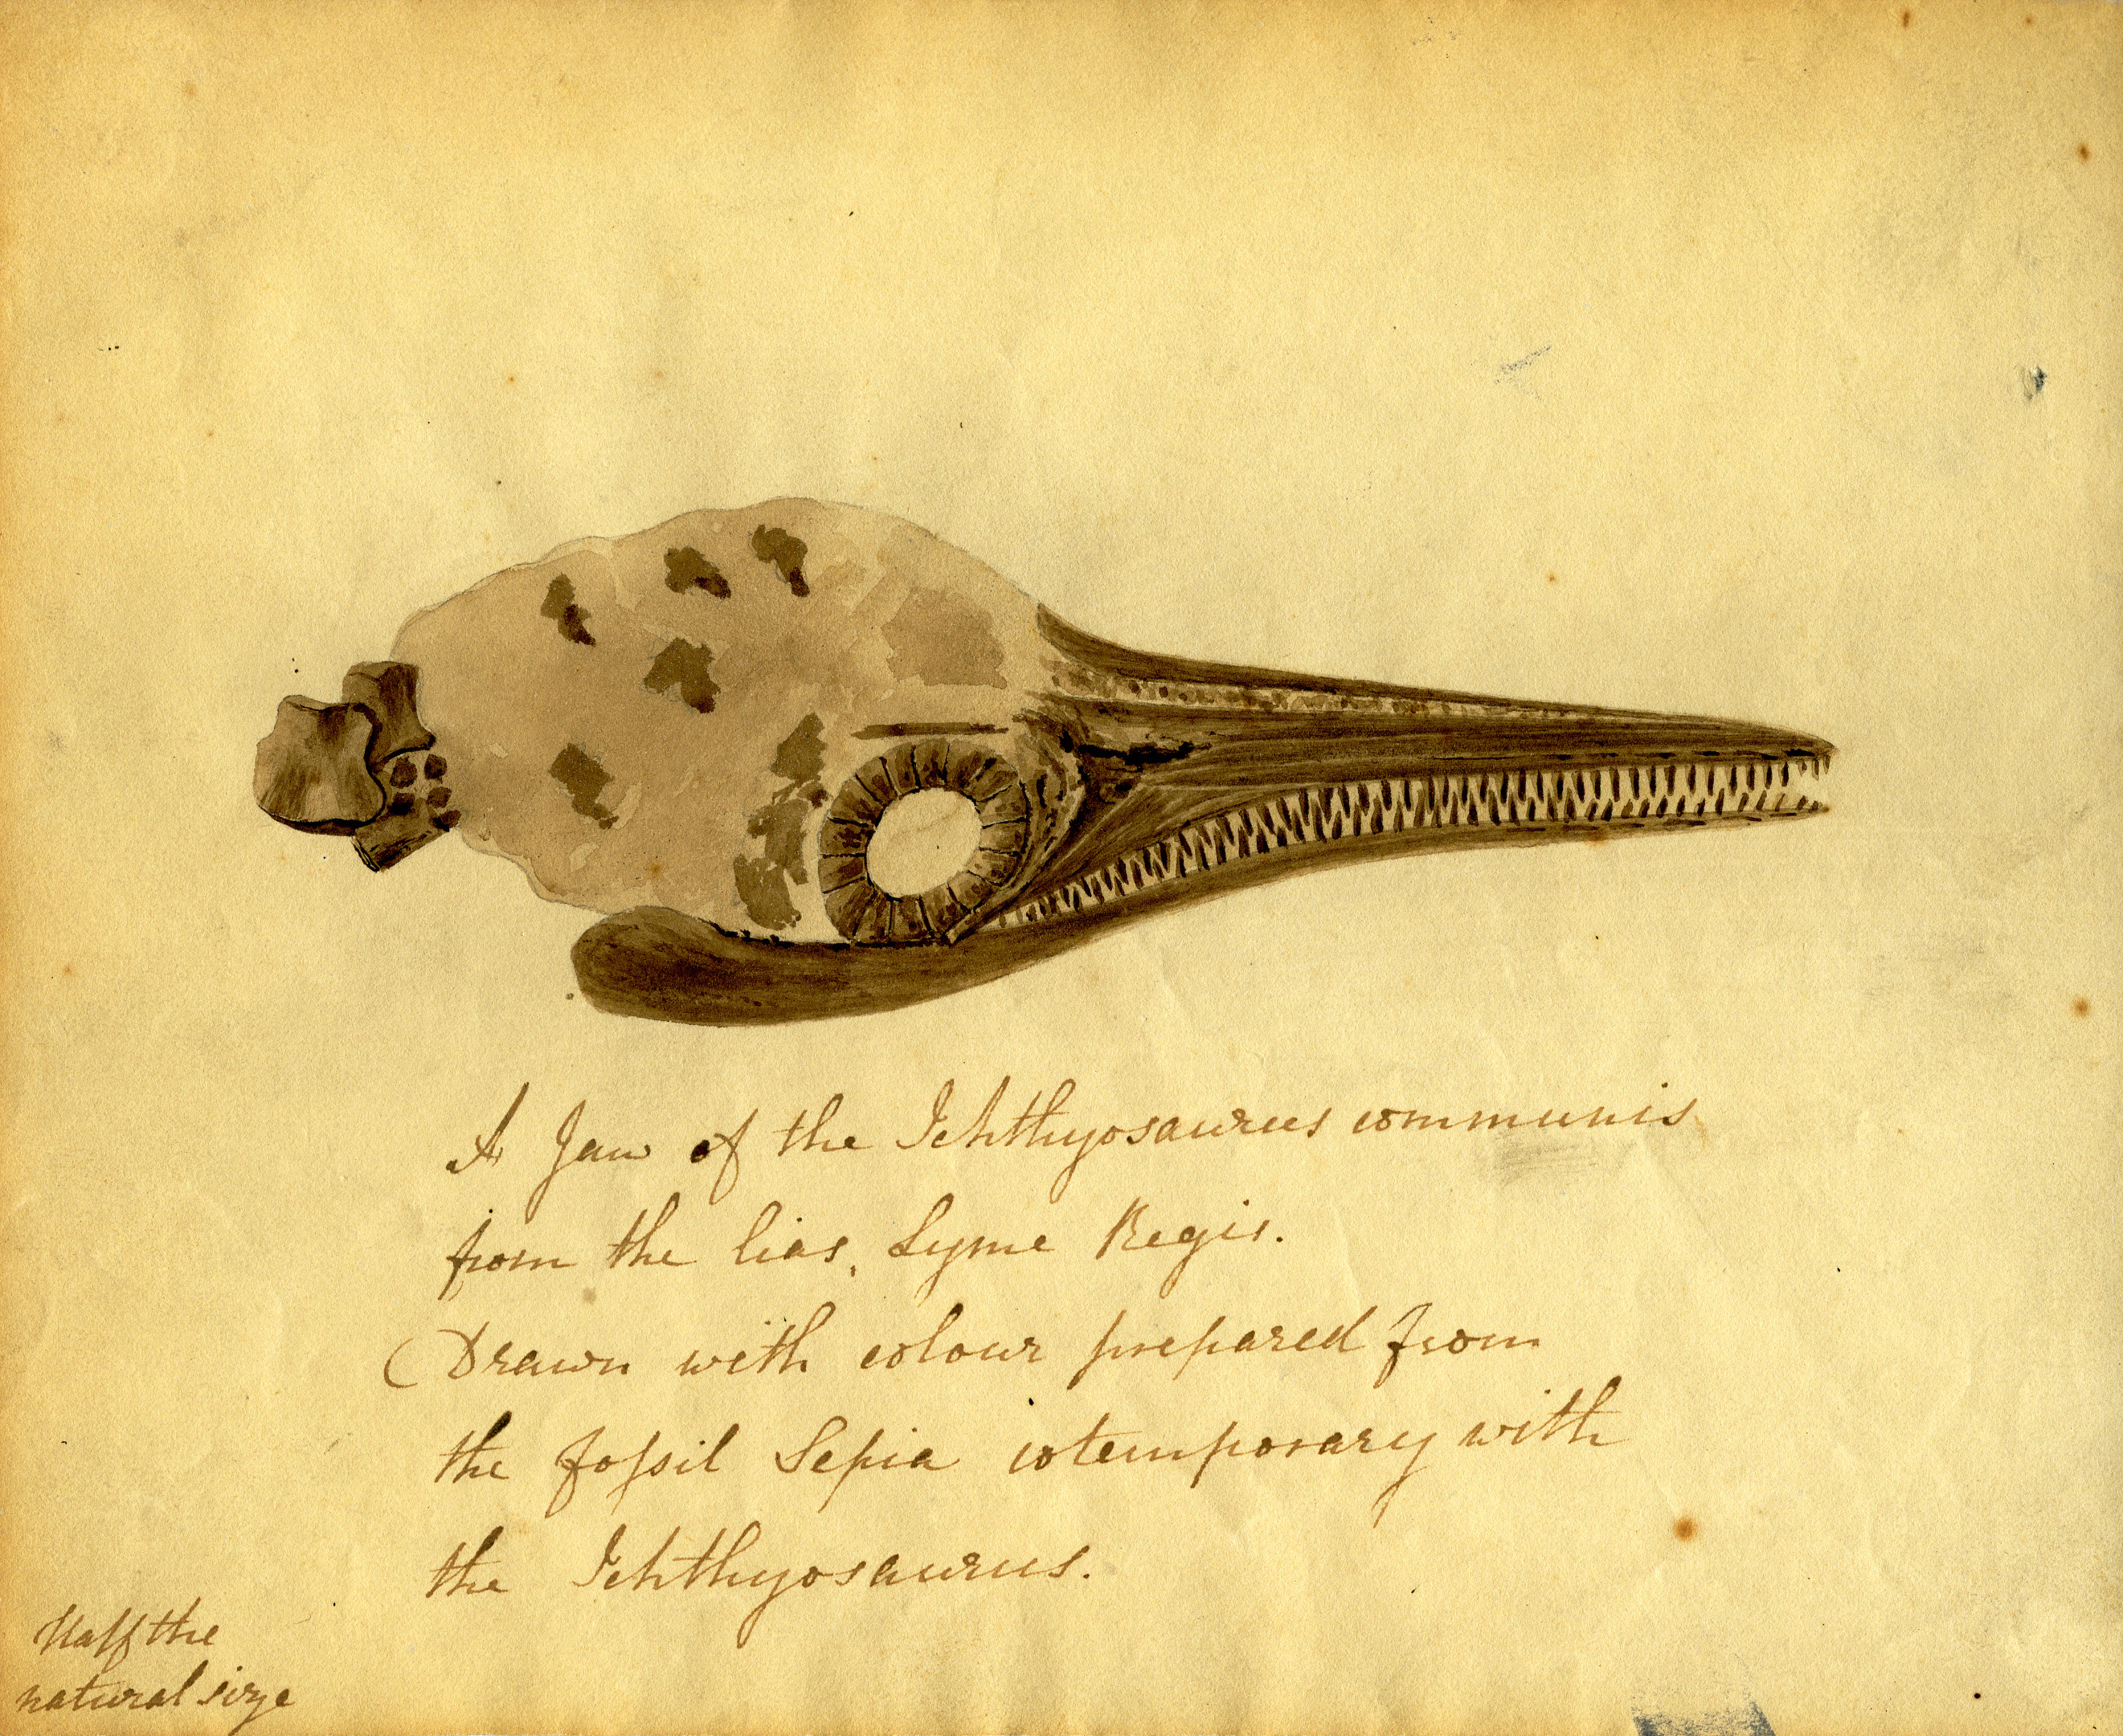 A letter from the palaeontologist Elizabeth Philpot to Mary Buckland, dated 9 December 1833, containing a sketch of an ichthyosaur skull painted in ink from a fossil squid of the same age as the ichthyosaur.